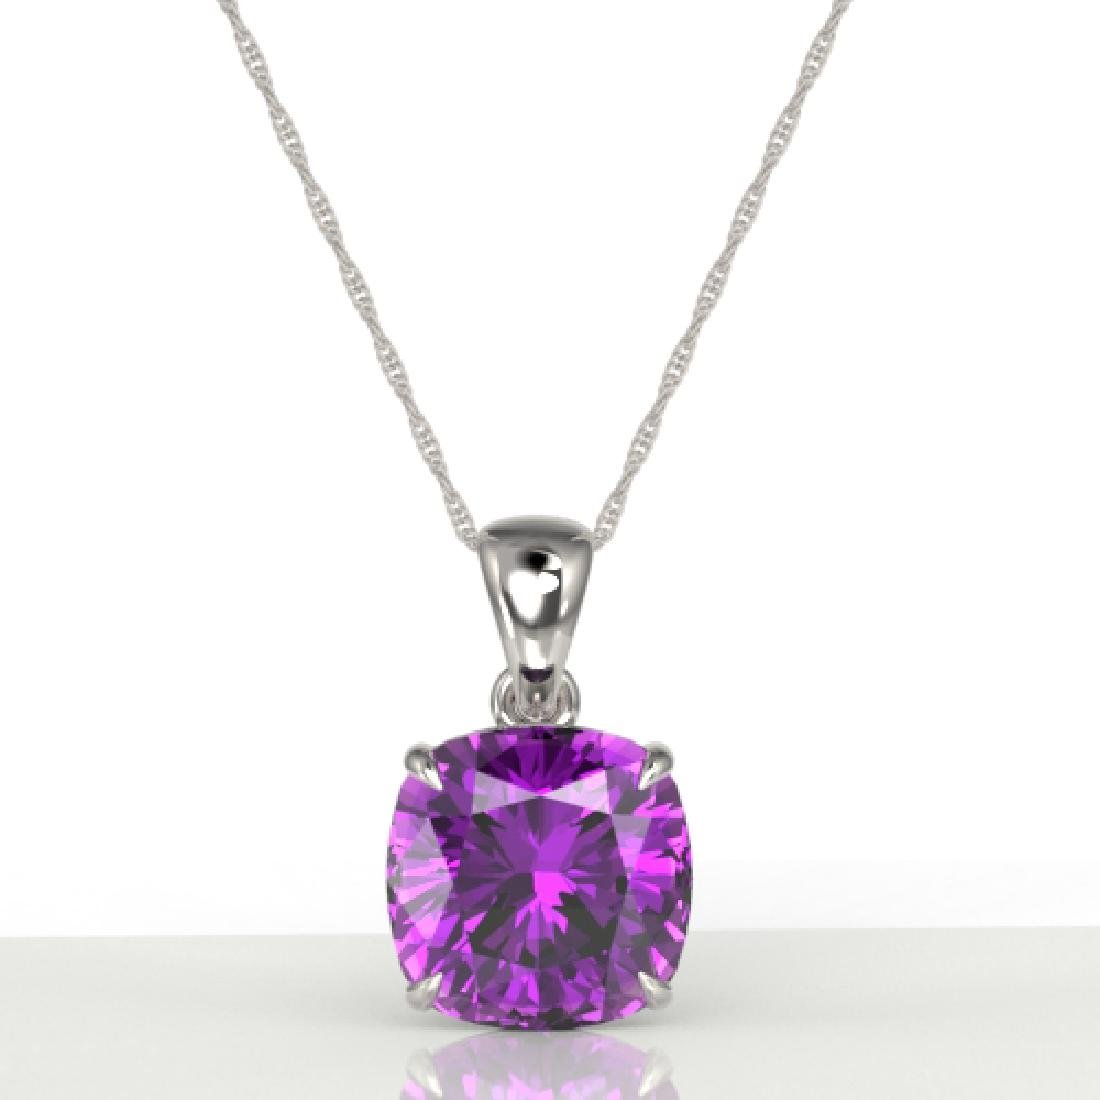 6 CTW Cushion Cut Amethyst Designer Solitaire Necklace - 2